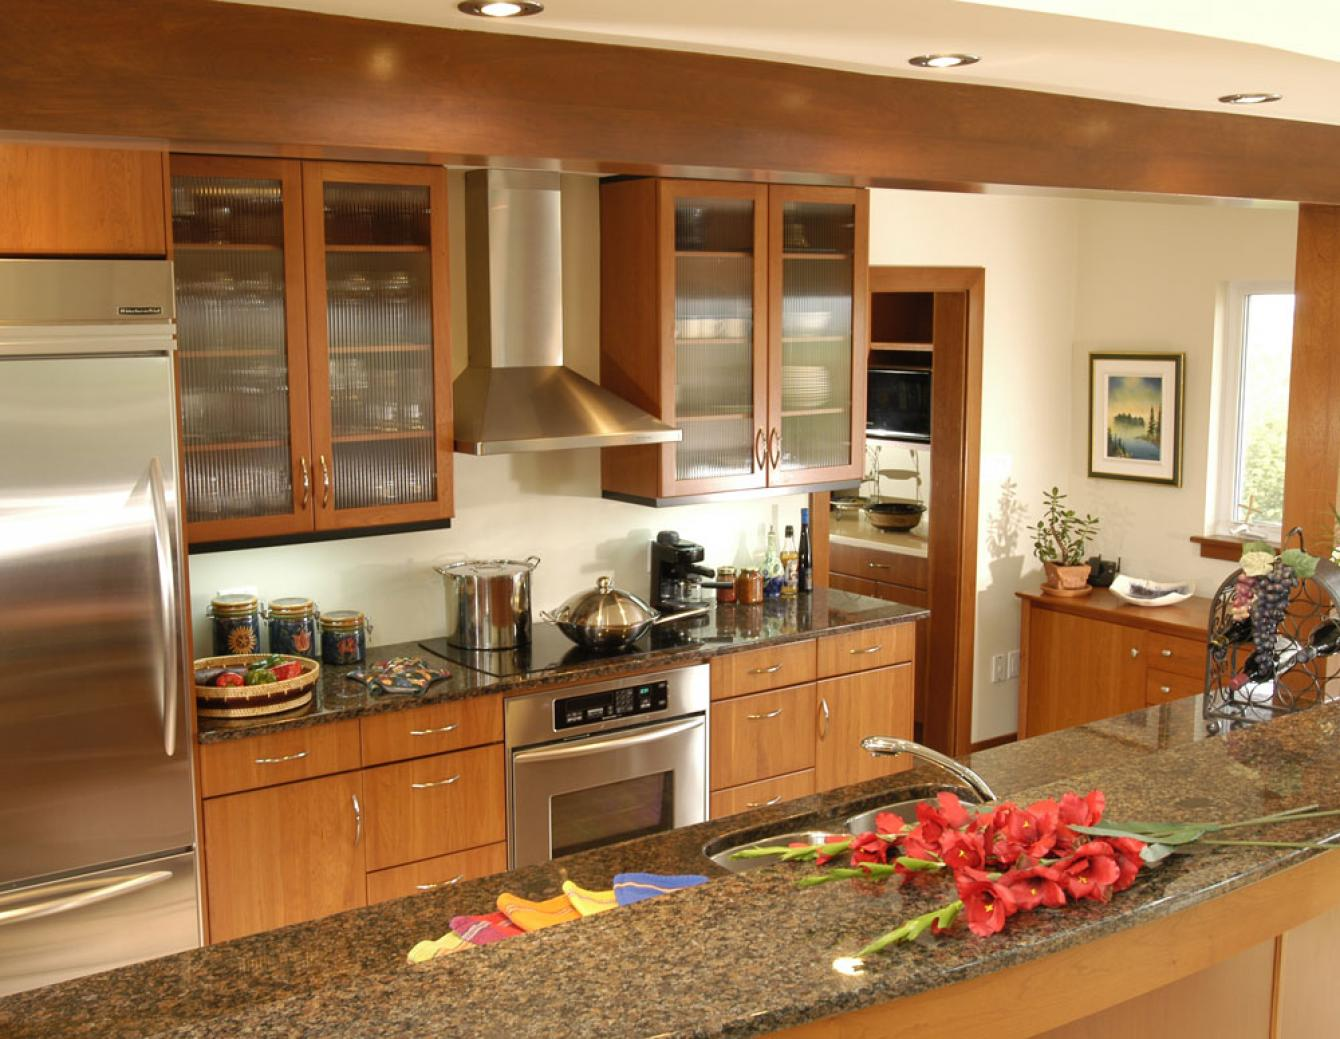 kitchen design image gallery kitchen design gallery triangle kitchen 498